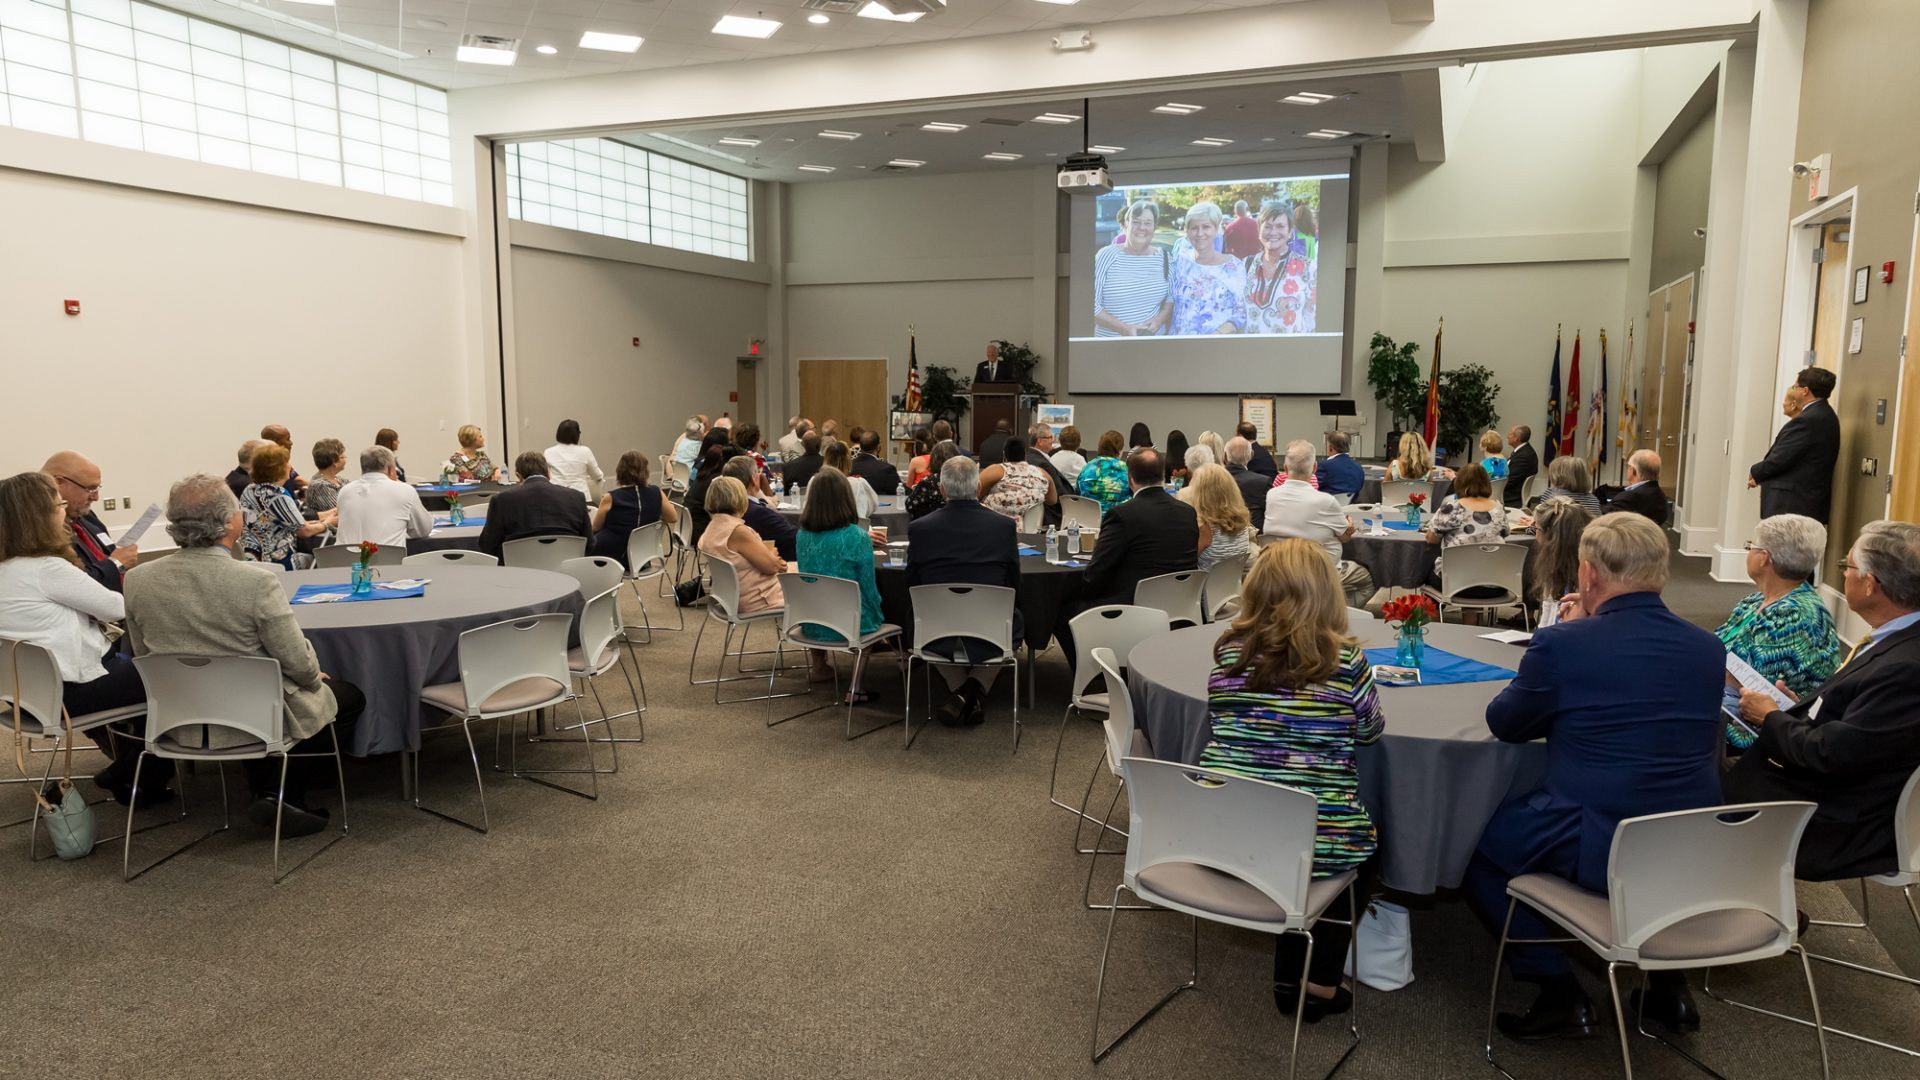 The 2018 PCC Foundation Distinguished Donor Reception took place in the Craig F. Goess Student Center's Davenport Multipurpose Room.